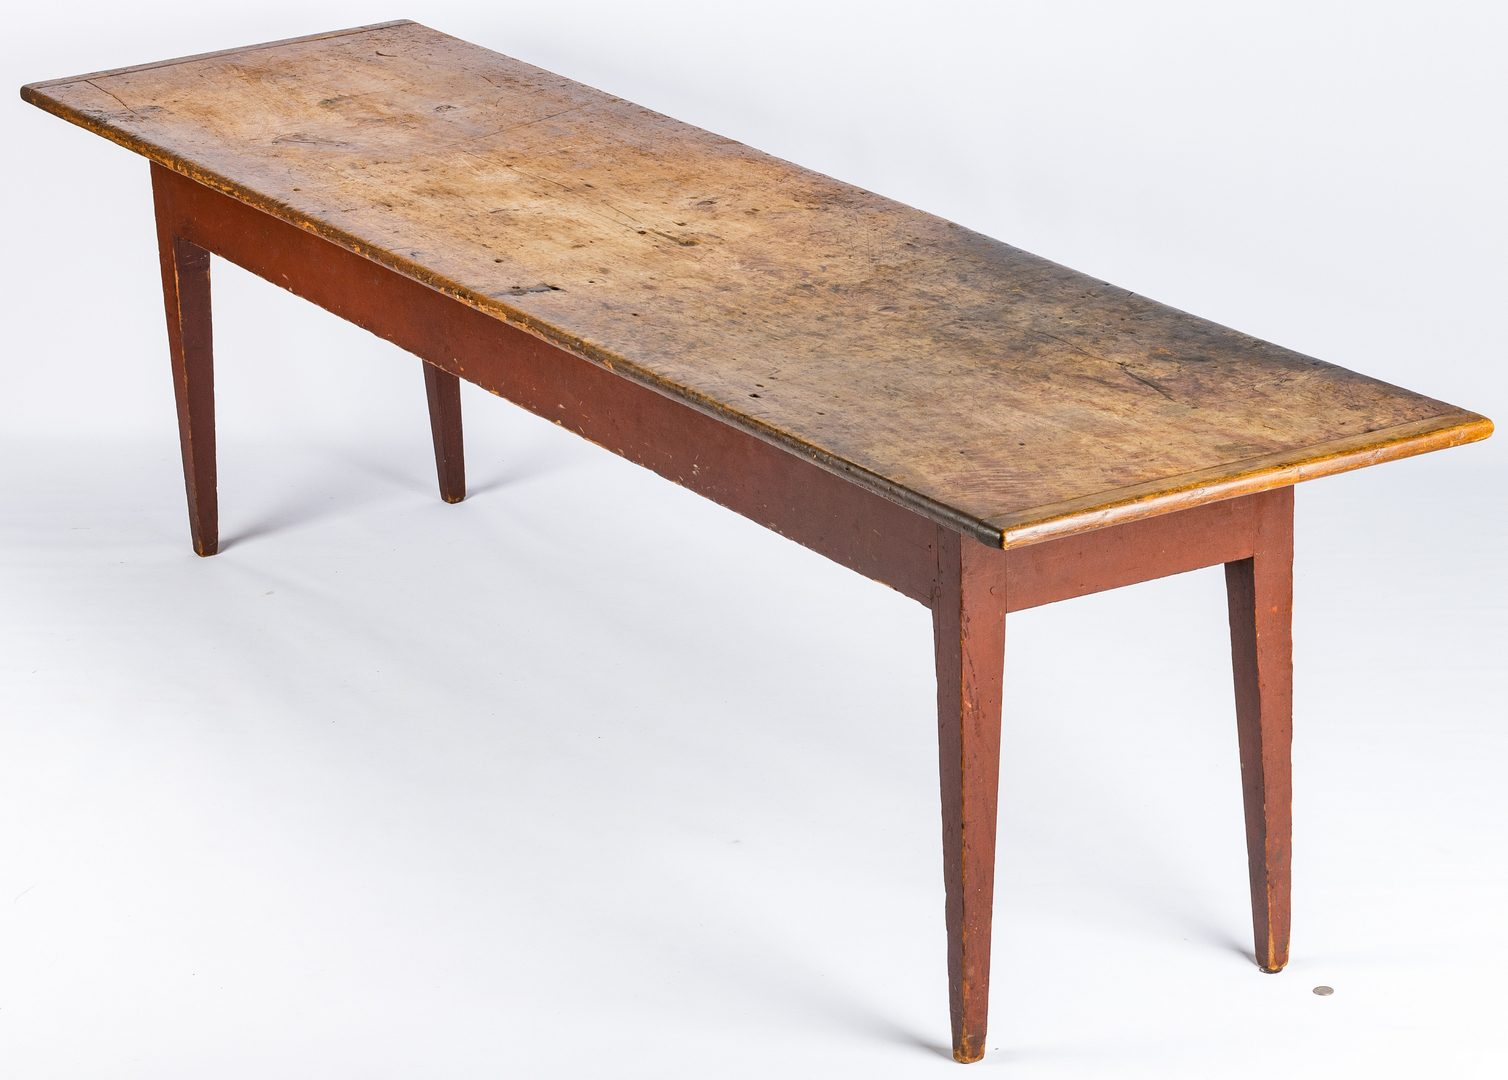 Lot 141: Mid-Atlantic or Southern Harvest Table